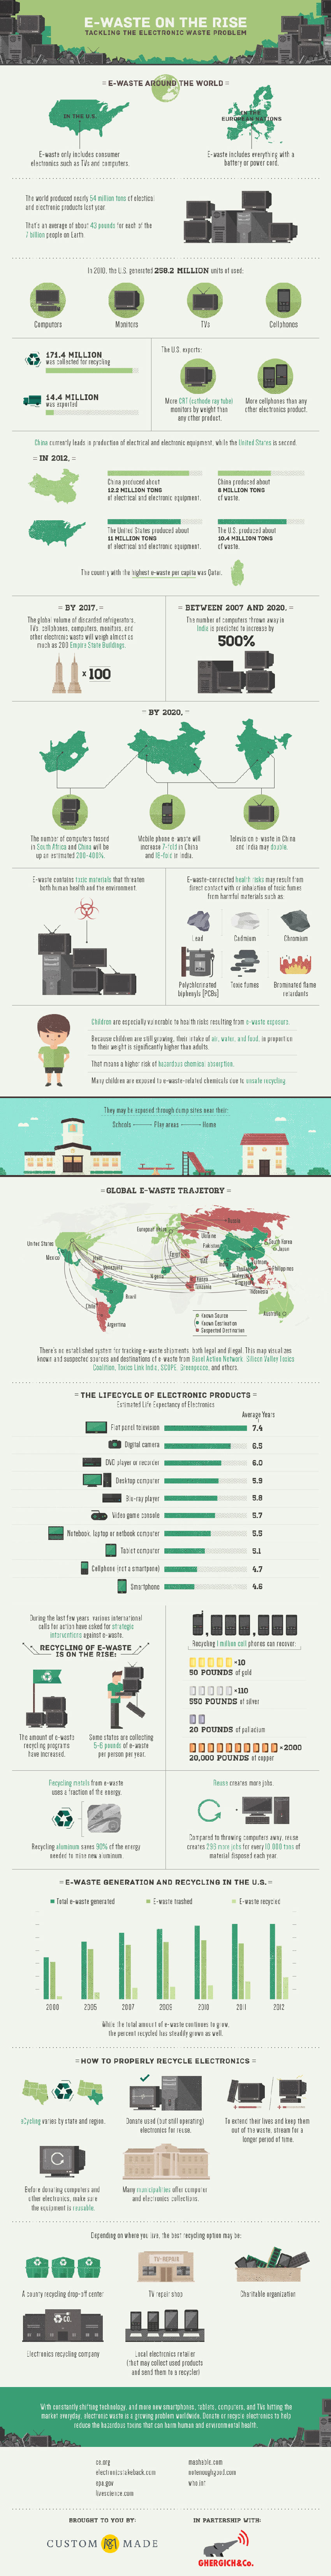 E-Waste On the Rise – E-Waste Recycling Industry Infographic